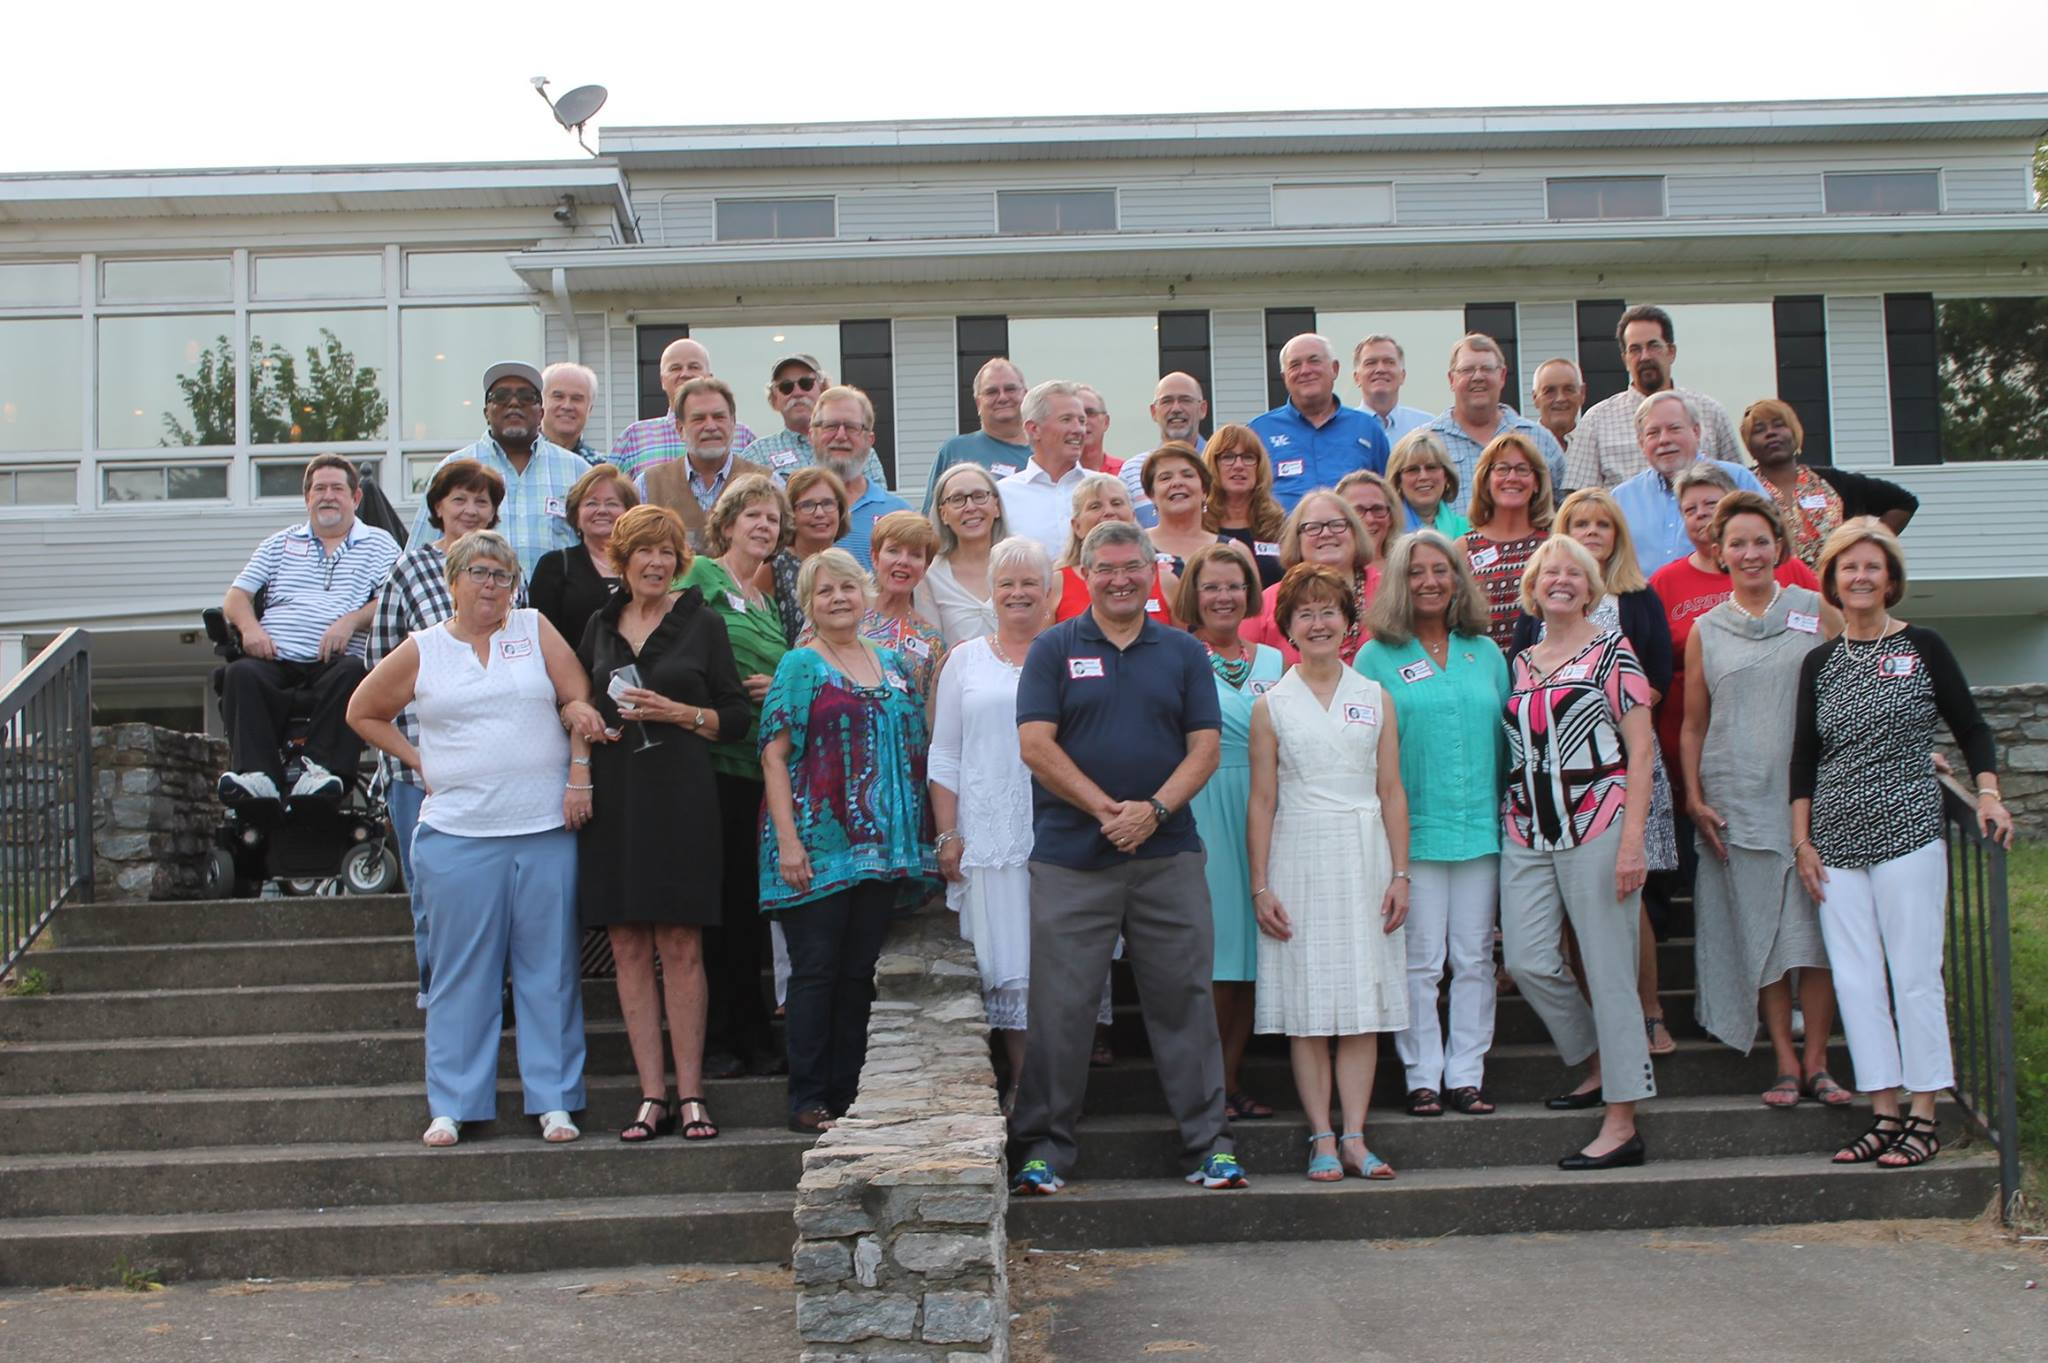 Class of '72 is lookin' good  at our 45th class reunion!